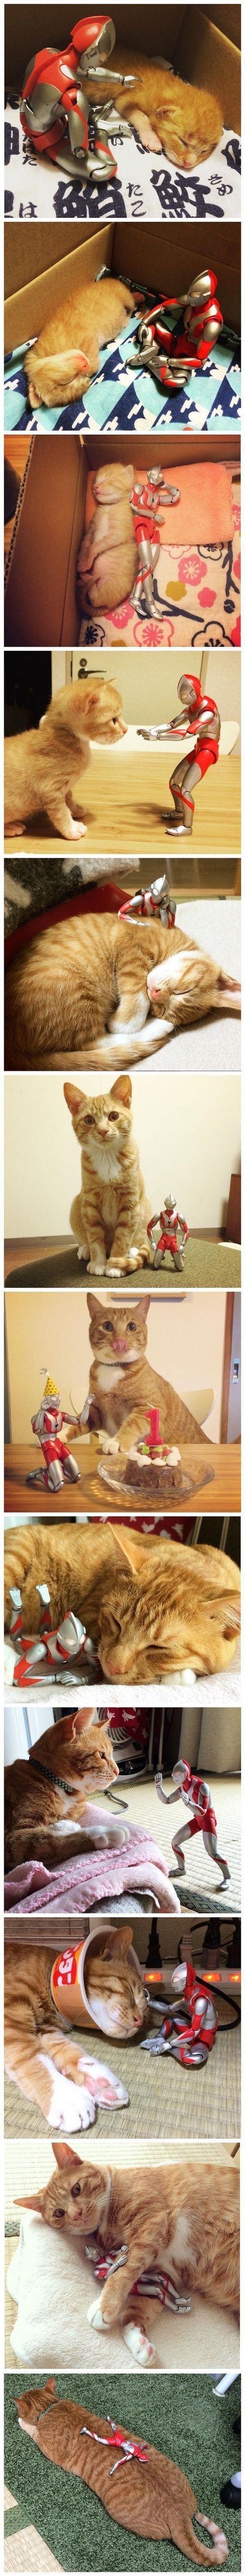 This Cat's Favorite Toy Has Been With Him Since He Was a Baby - I Can Has Cheezburger? - Funny Cats | Funny Pictures | Funny Cat Memes | GIF | Cat GIFs | Dogs | Animal Captions | LOLcats | Have Fun | Funny Memes